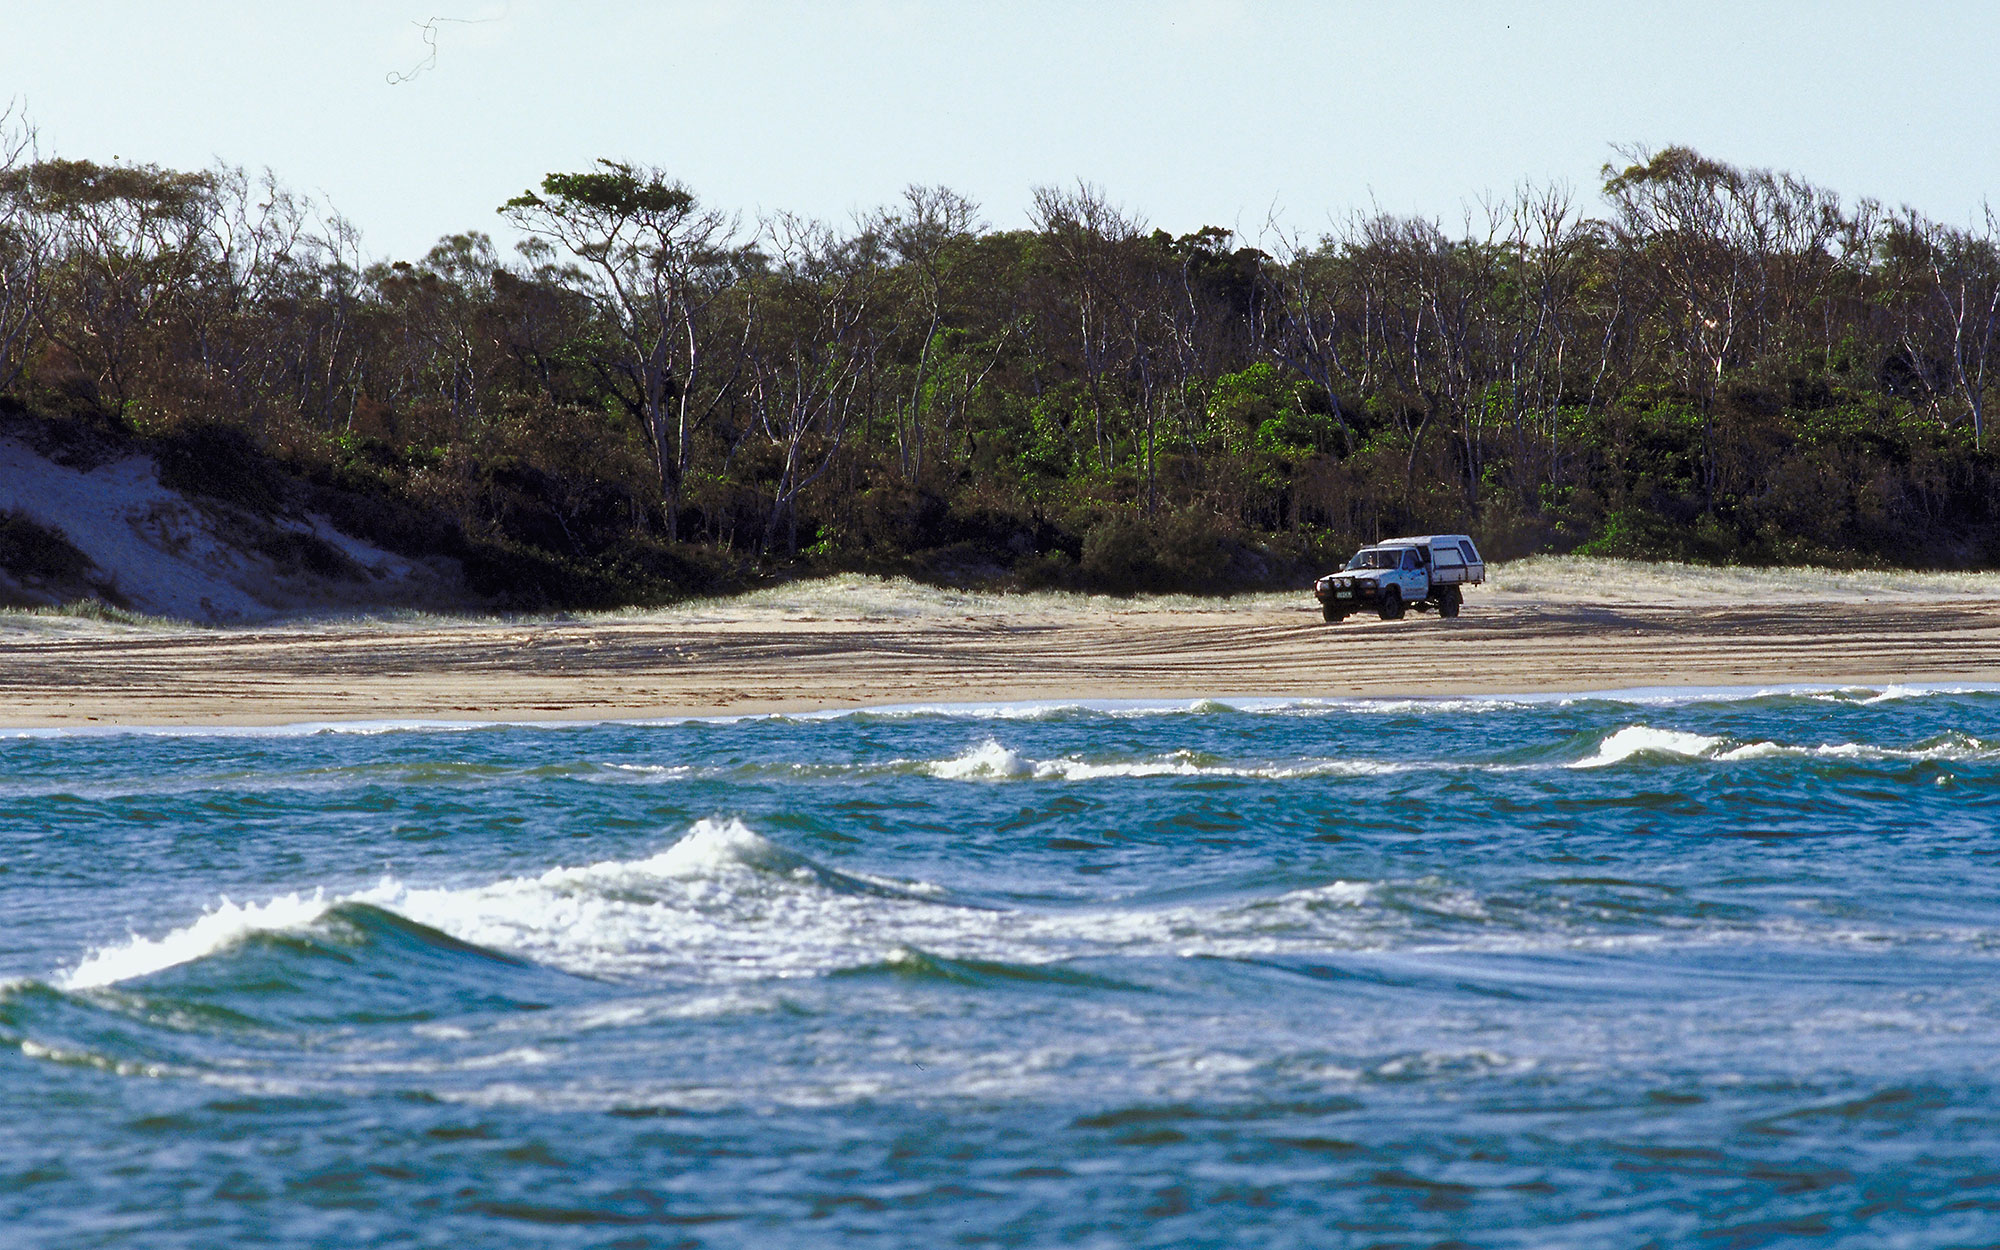 Truck driving at Teewah colored sands, Queensland, Australia